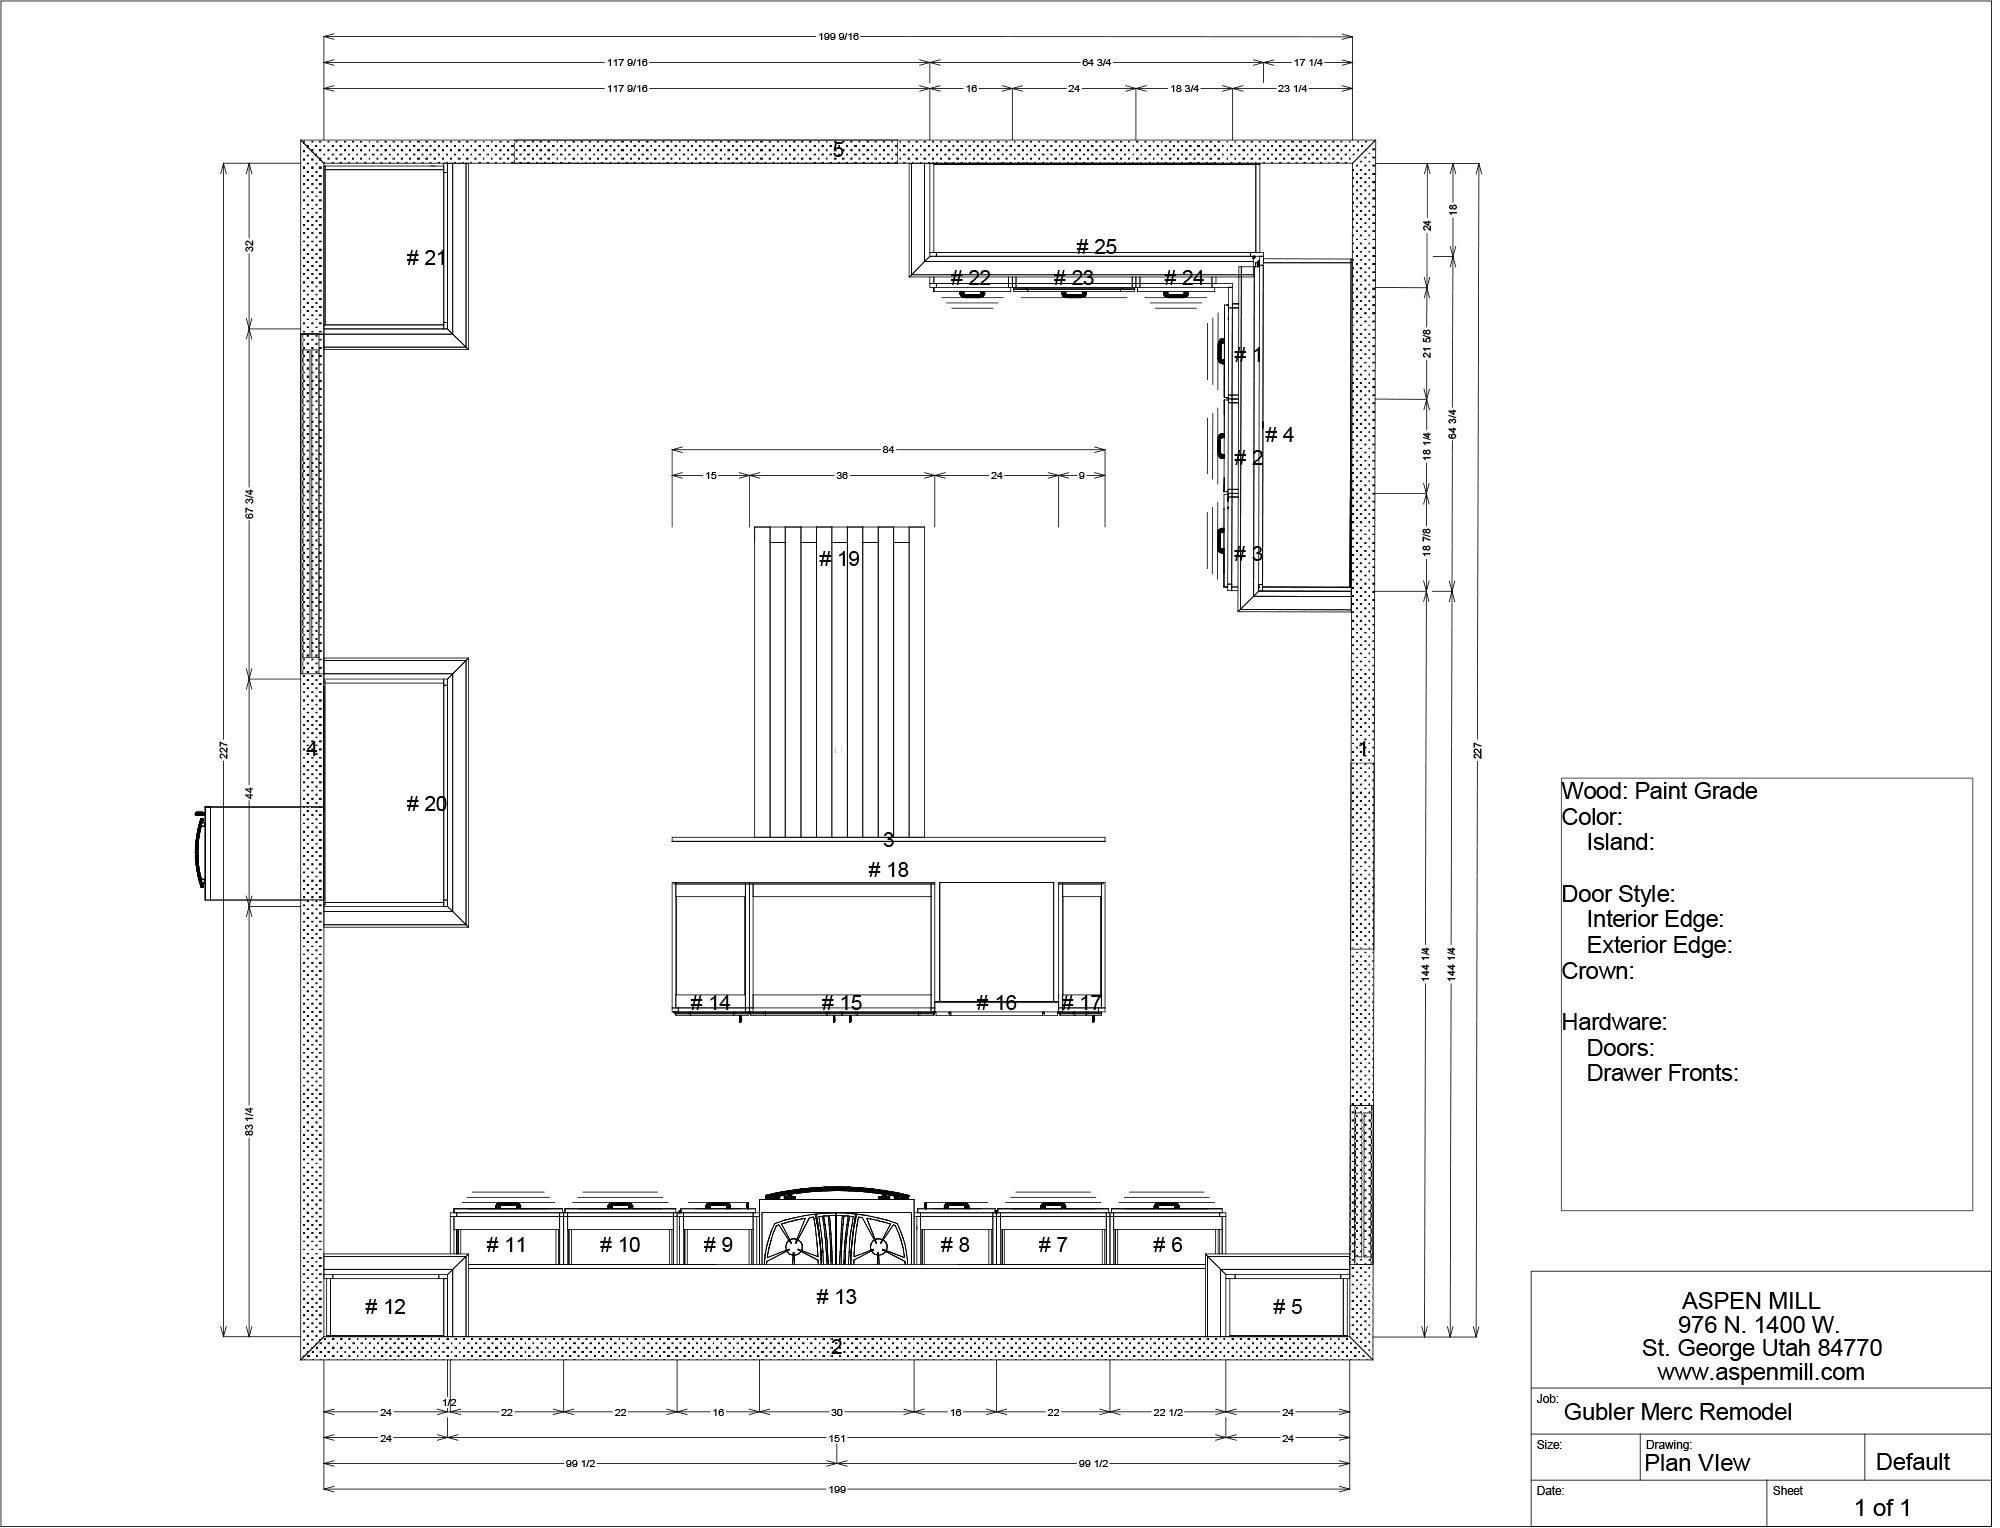 Kitchen Layout + Design At The Merc • Vintage Revivals